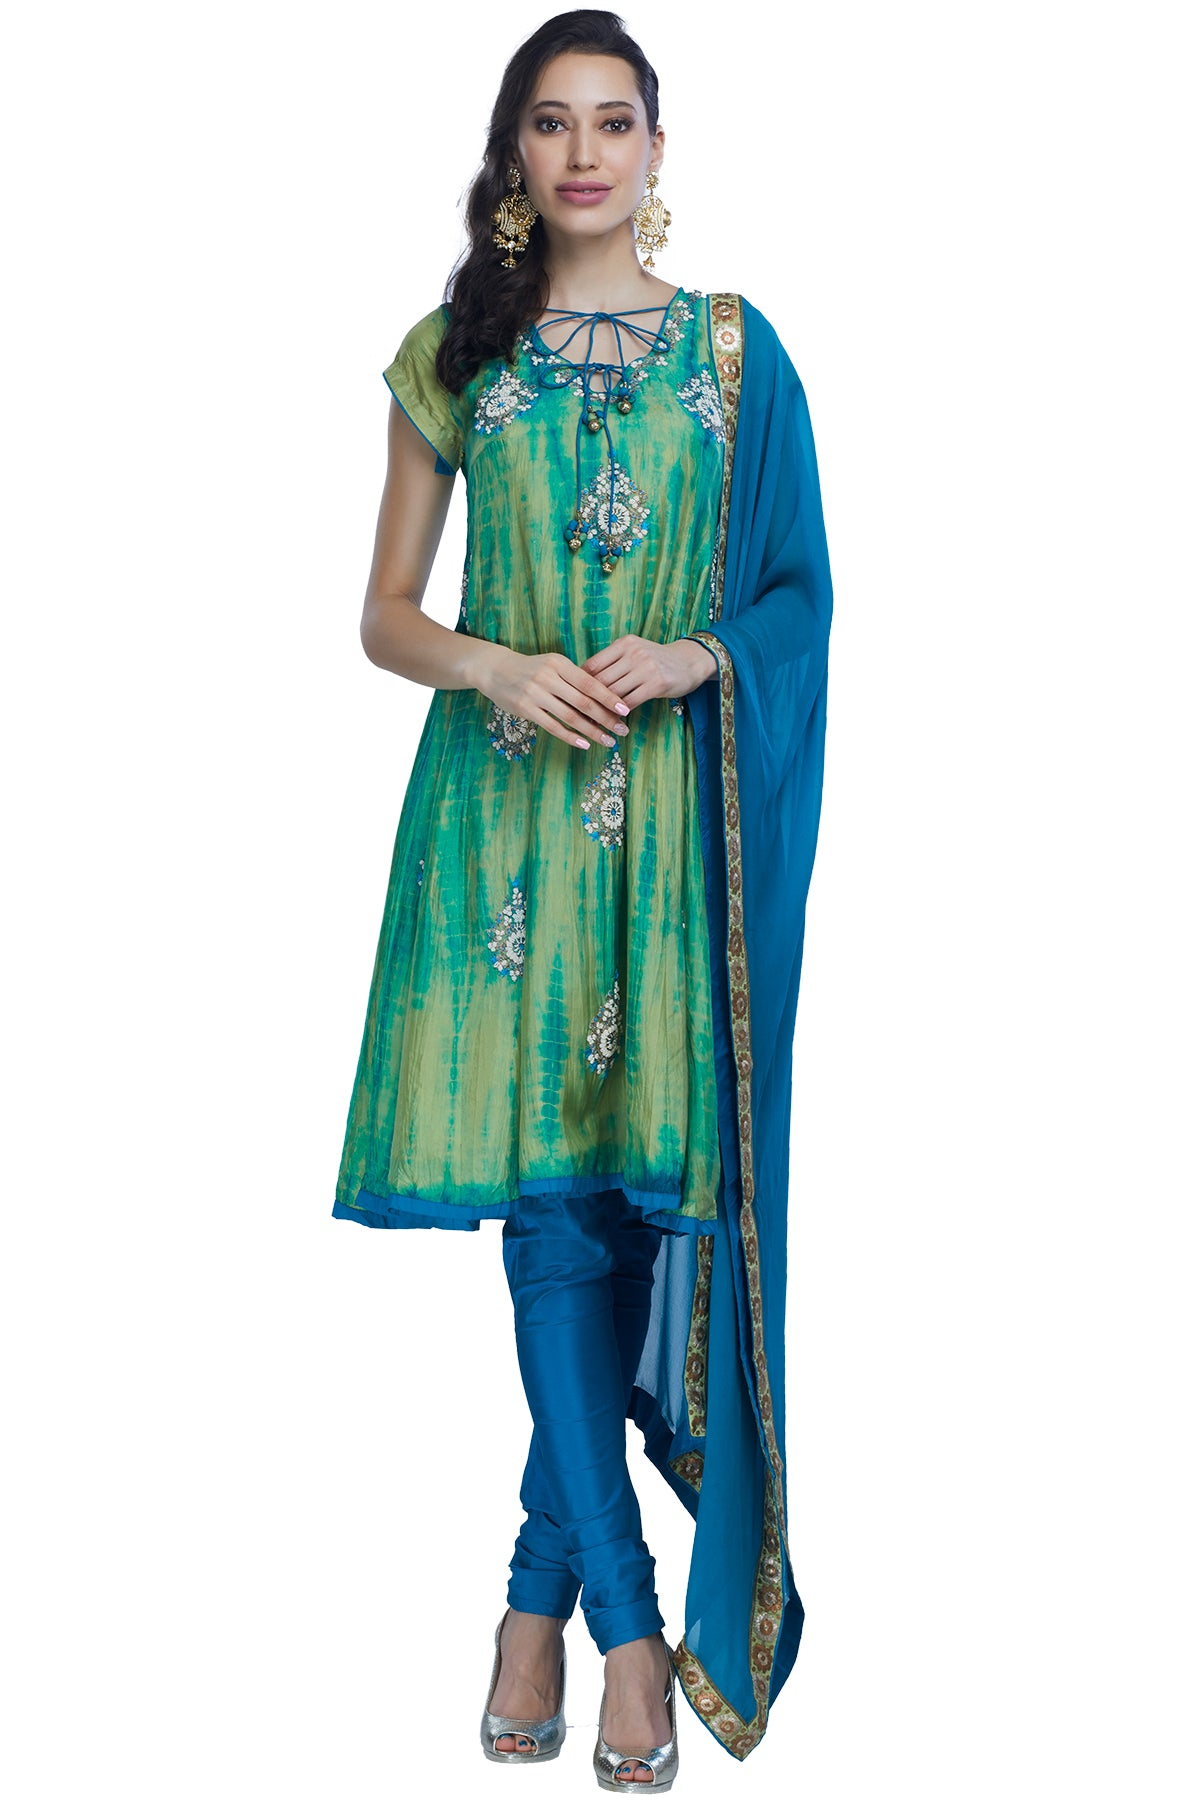 Your new staple for the upcoming festive season, this uplifting kurta churidar in the seizing hues of green and blue can be toned down for a pooja or toned up for a formal event.